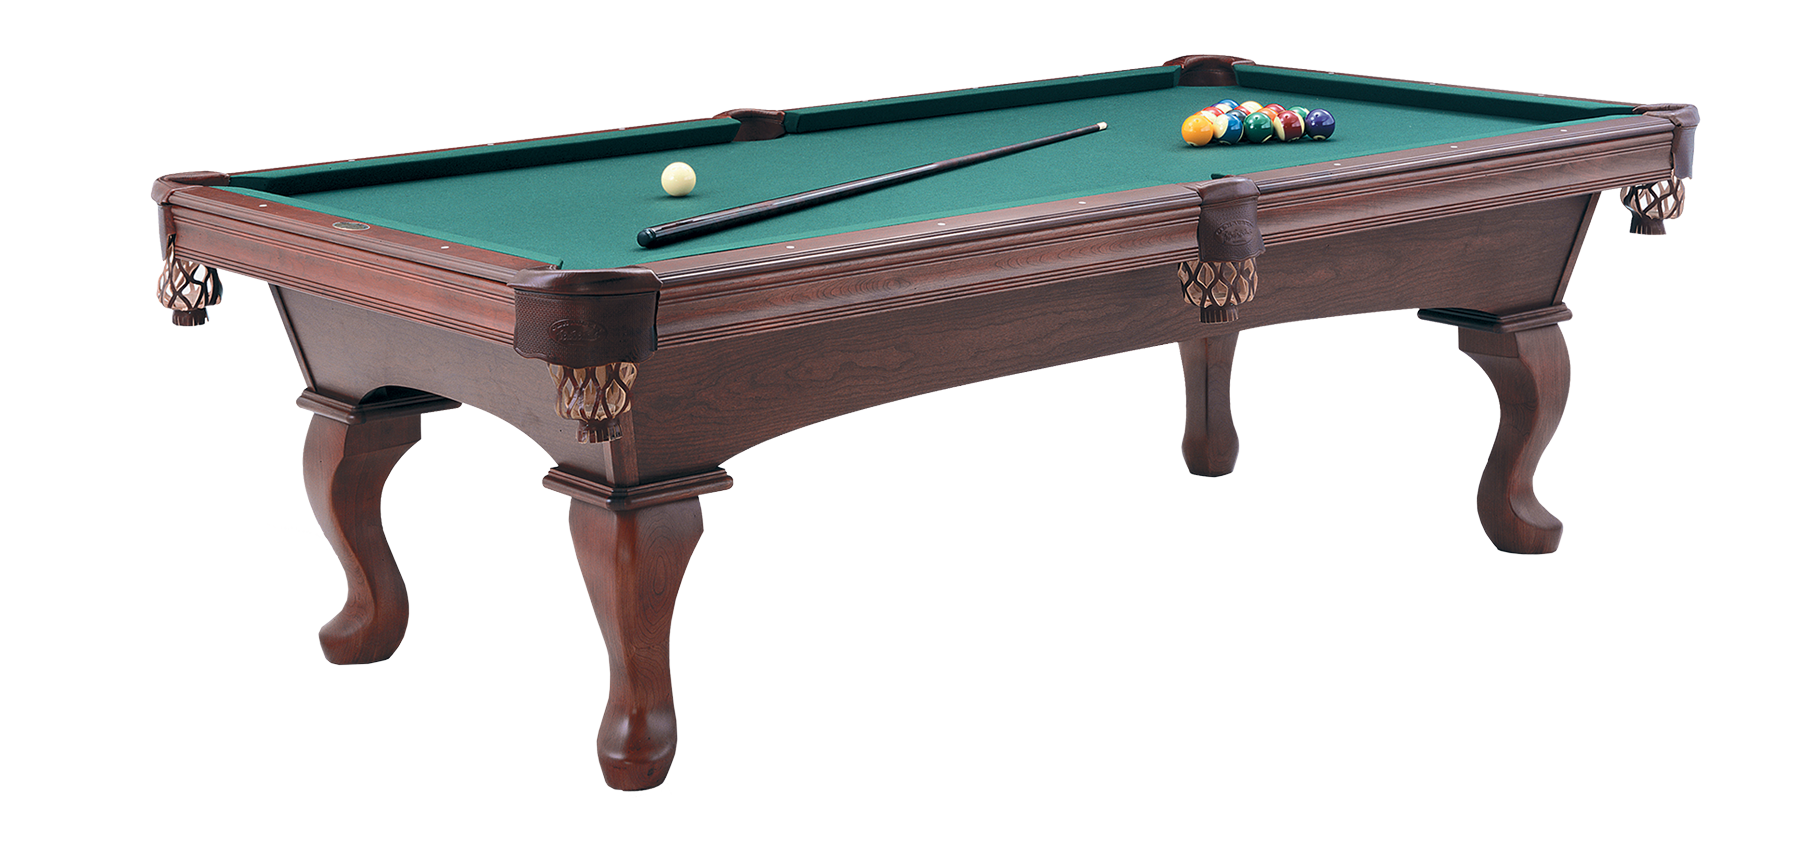 Olhausen Billiards Manufacturing Pool Table Olhausen Pool Table Billiard Factory